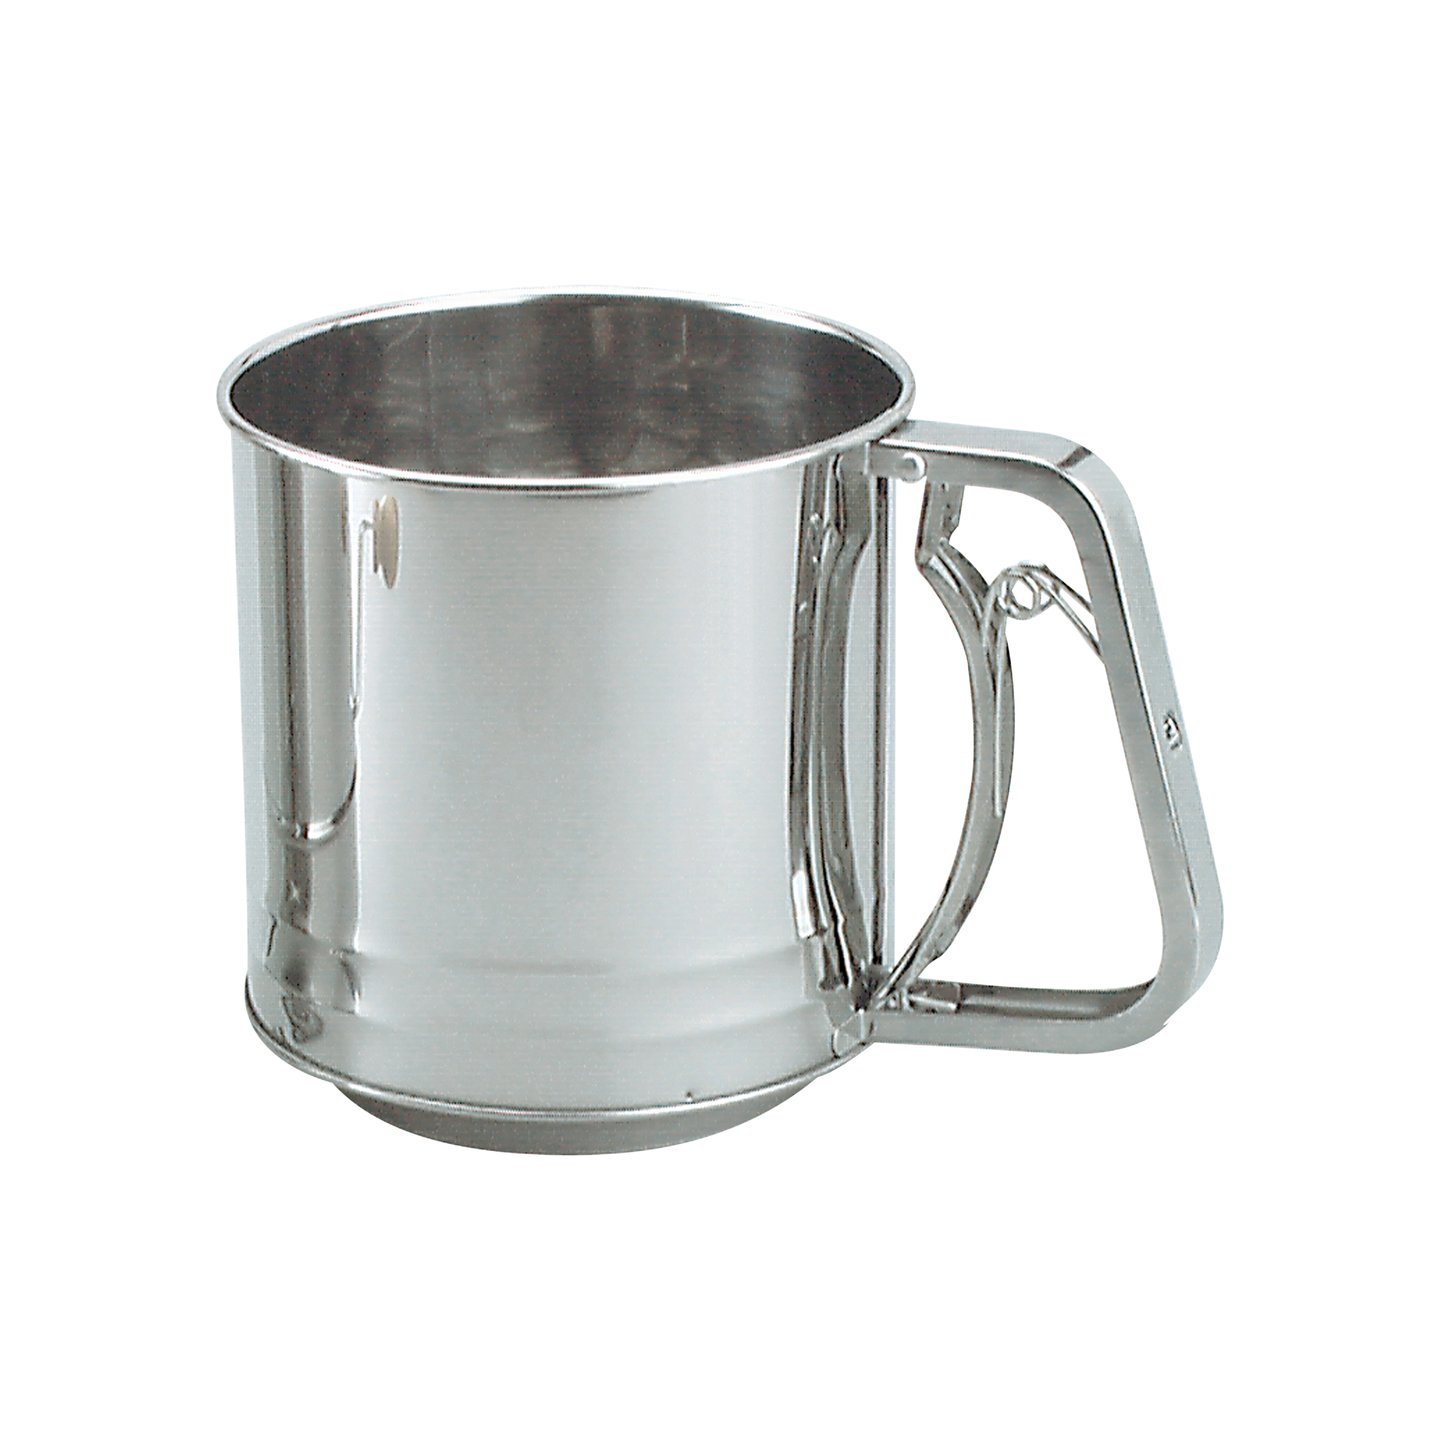 Flour Sifter Stainless Steel 5 Cup Squeeze Handle